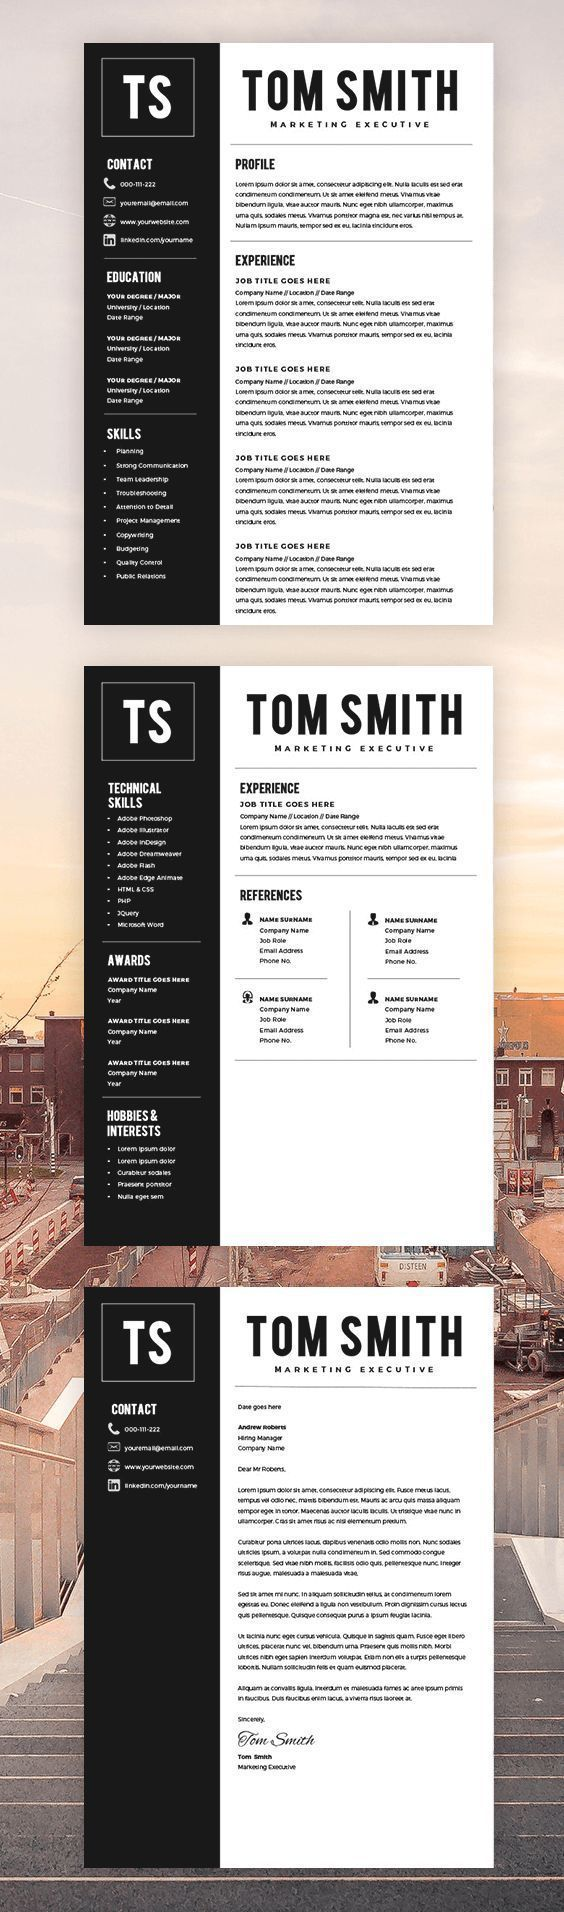 Two Page Resume Template - Resume Builder - CV Template - Free Cover Letter - MS Word on Mac / PC - Sample - Instant Download